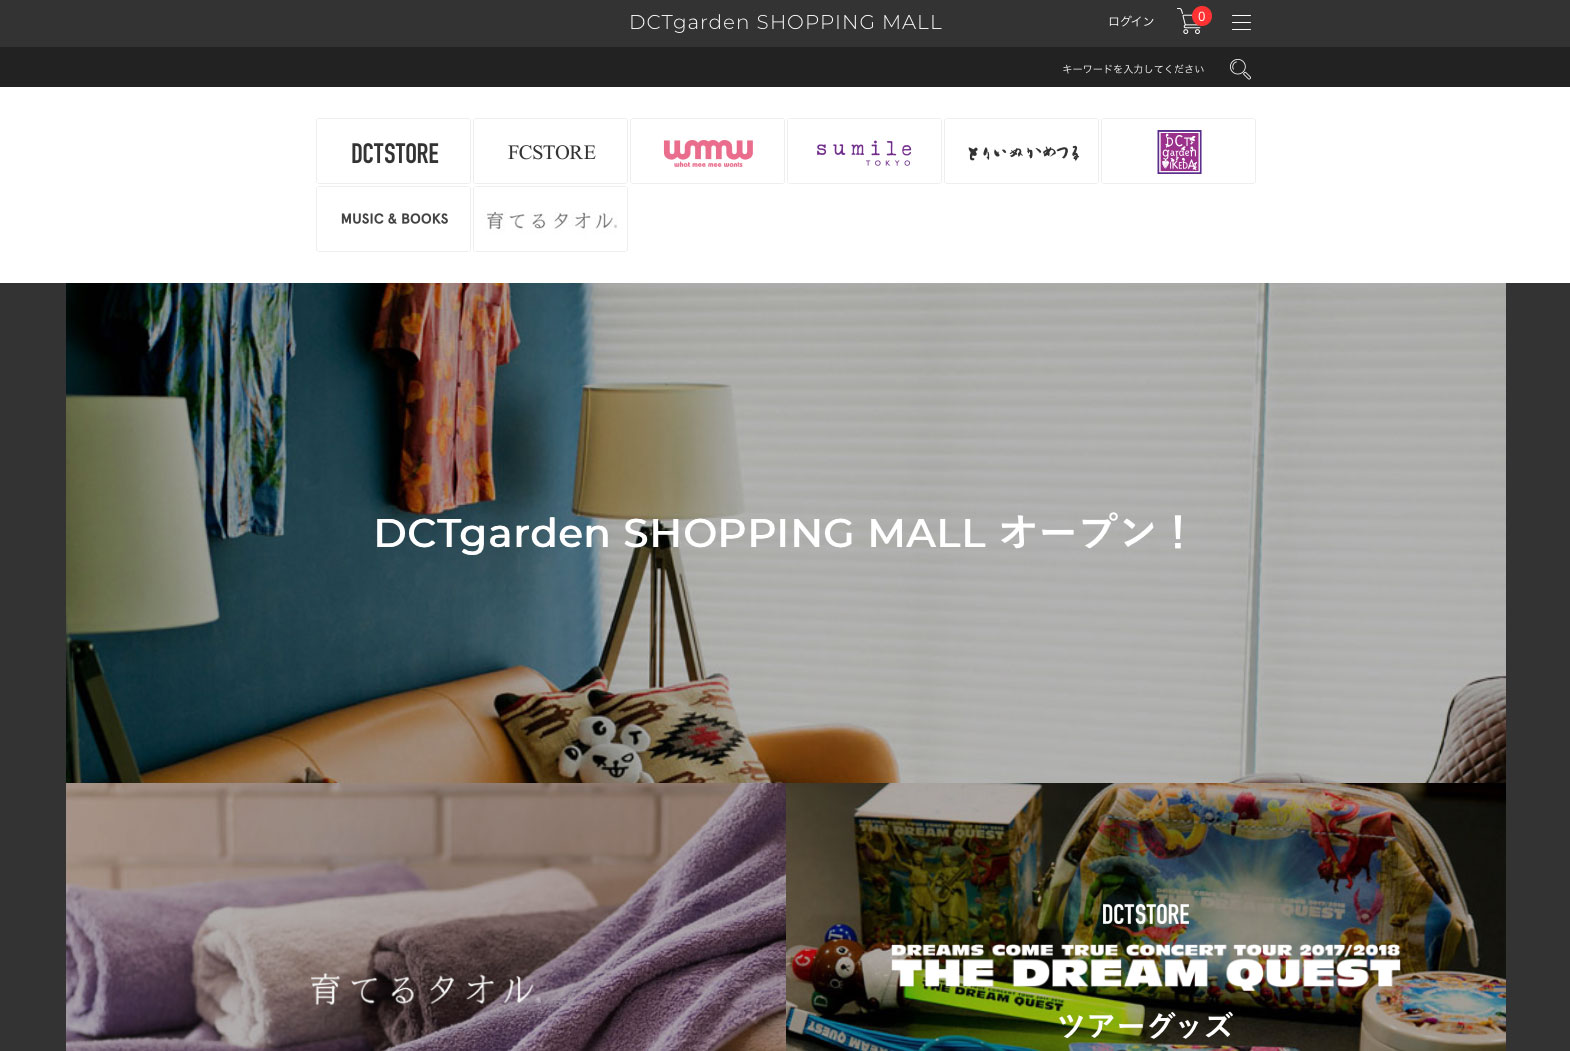 DCTgarden SHOPPING MALL / Web